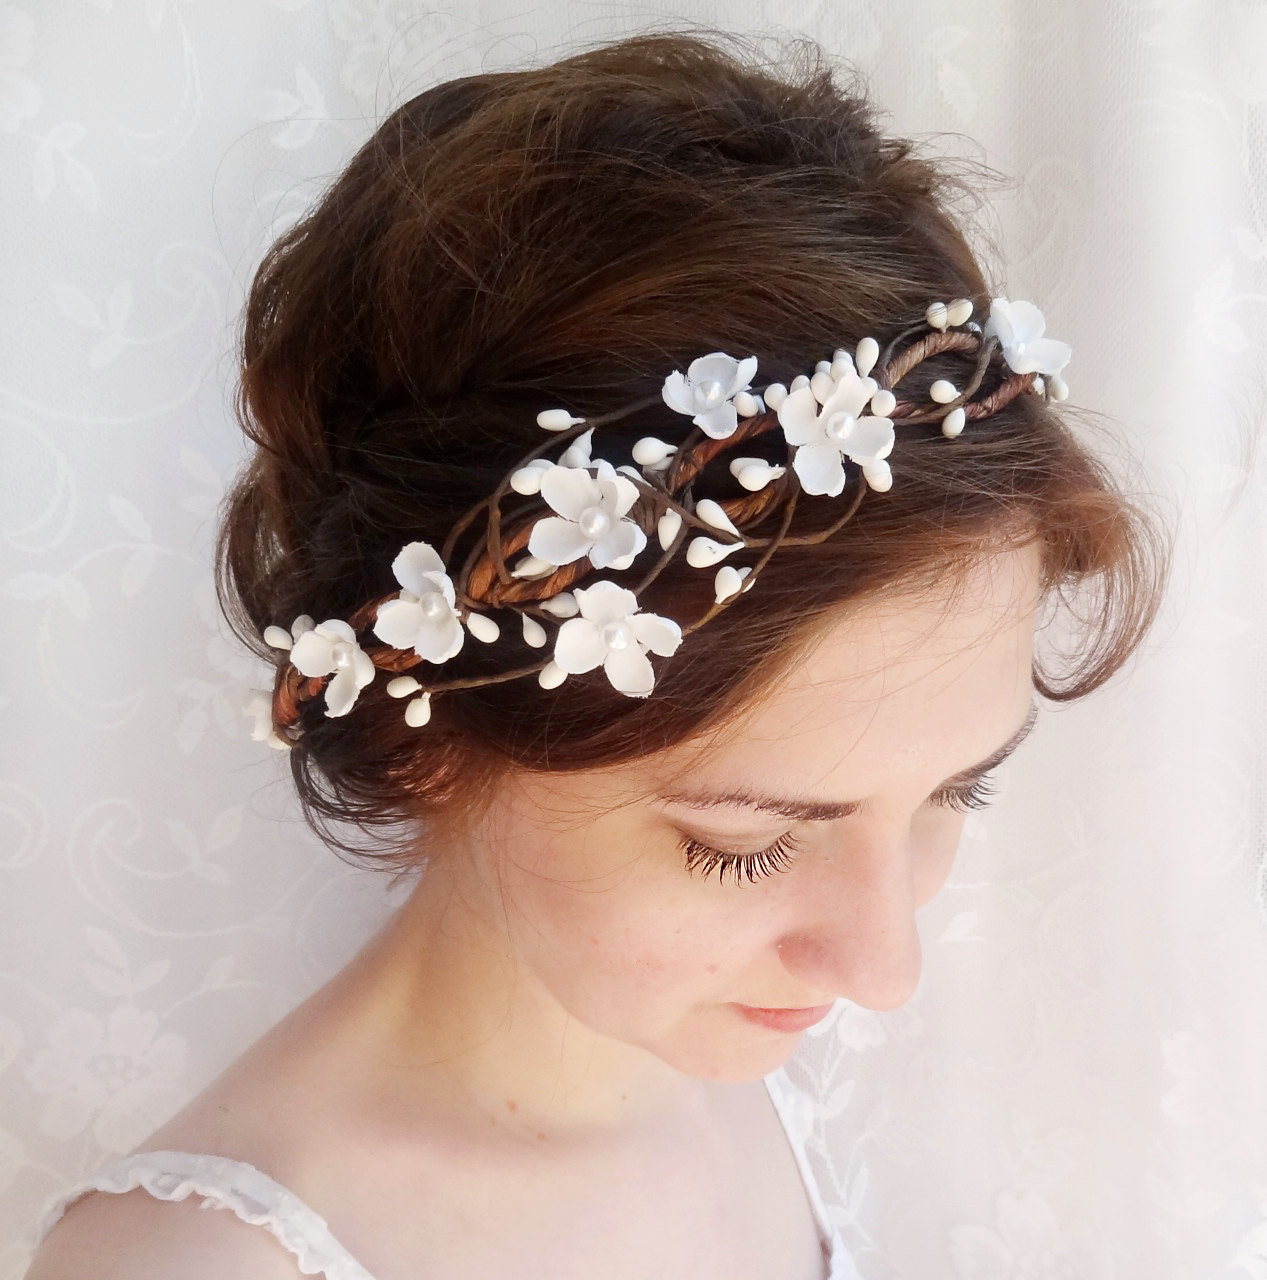 Bridal Hair Accessories Wedding Flower Headpiece White Flower